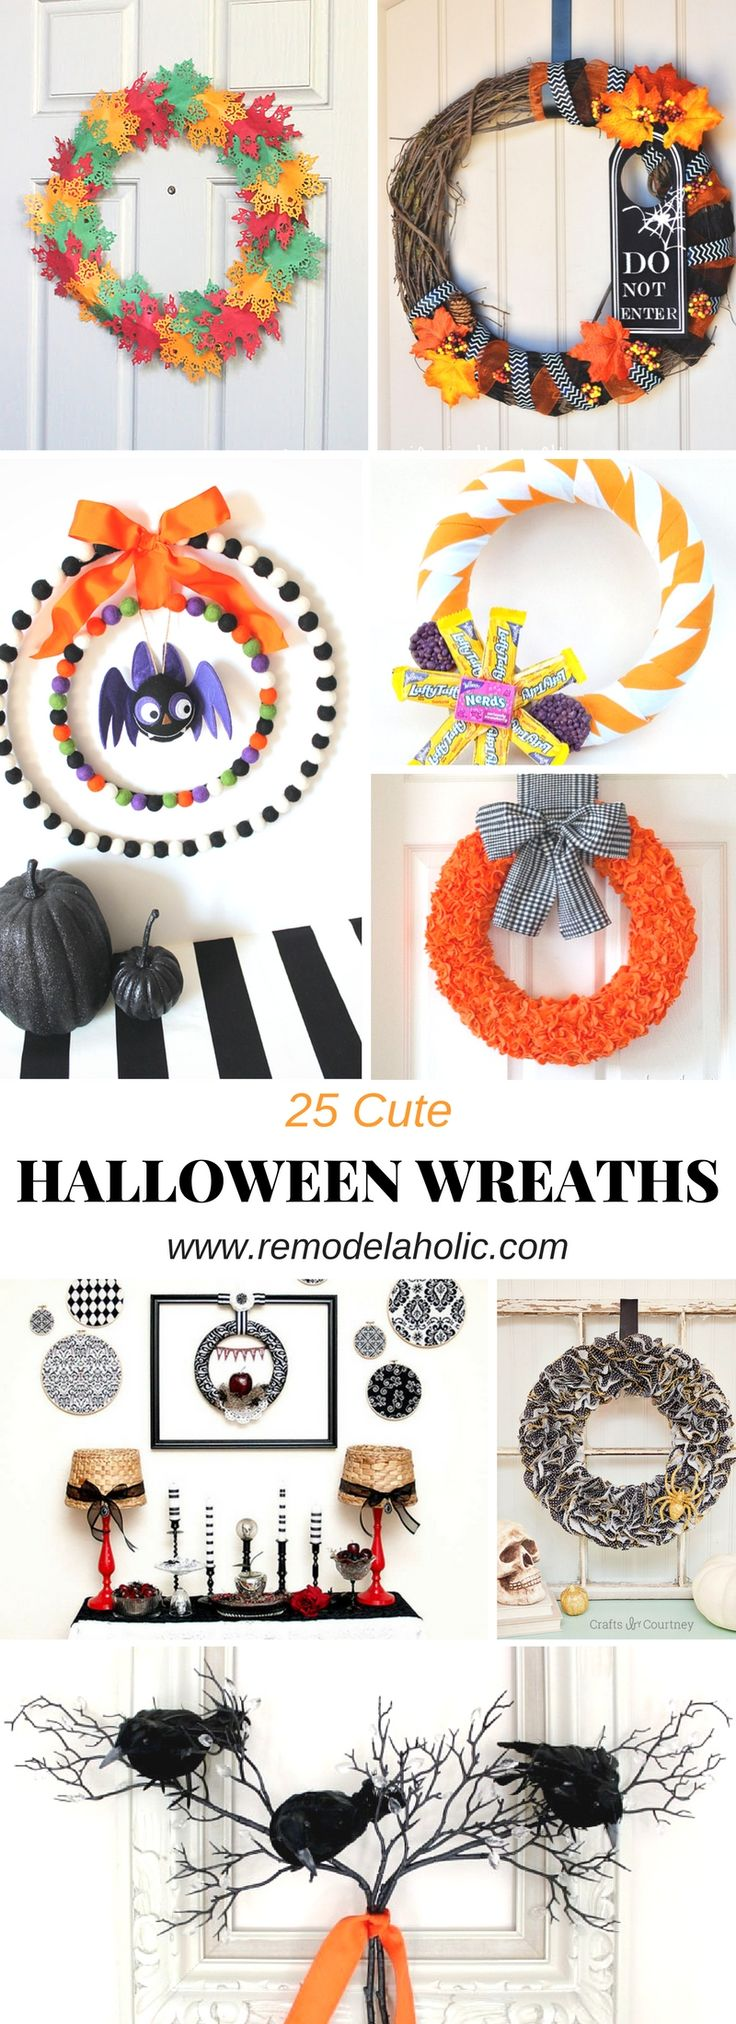 25 cute halloween wreaths - When To Start Decorating For Halloween